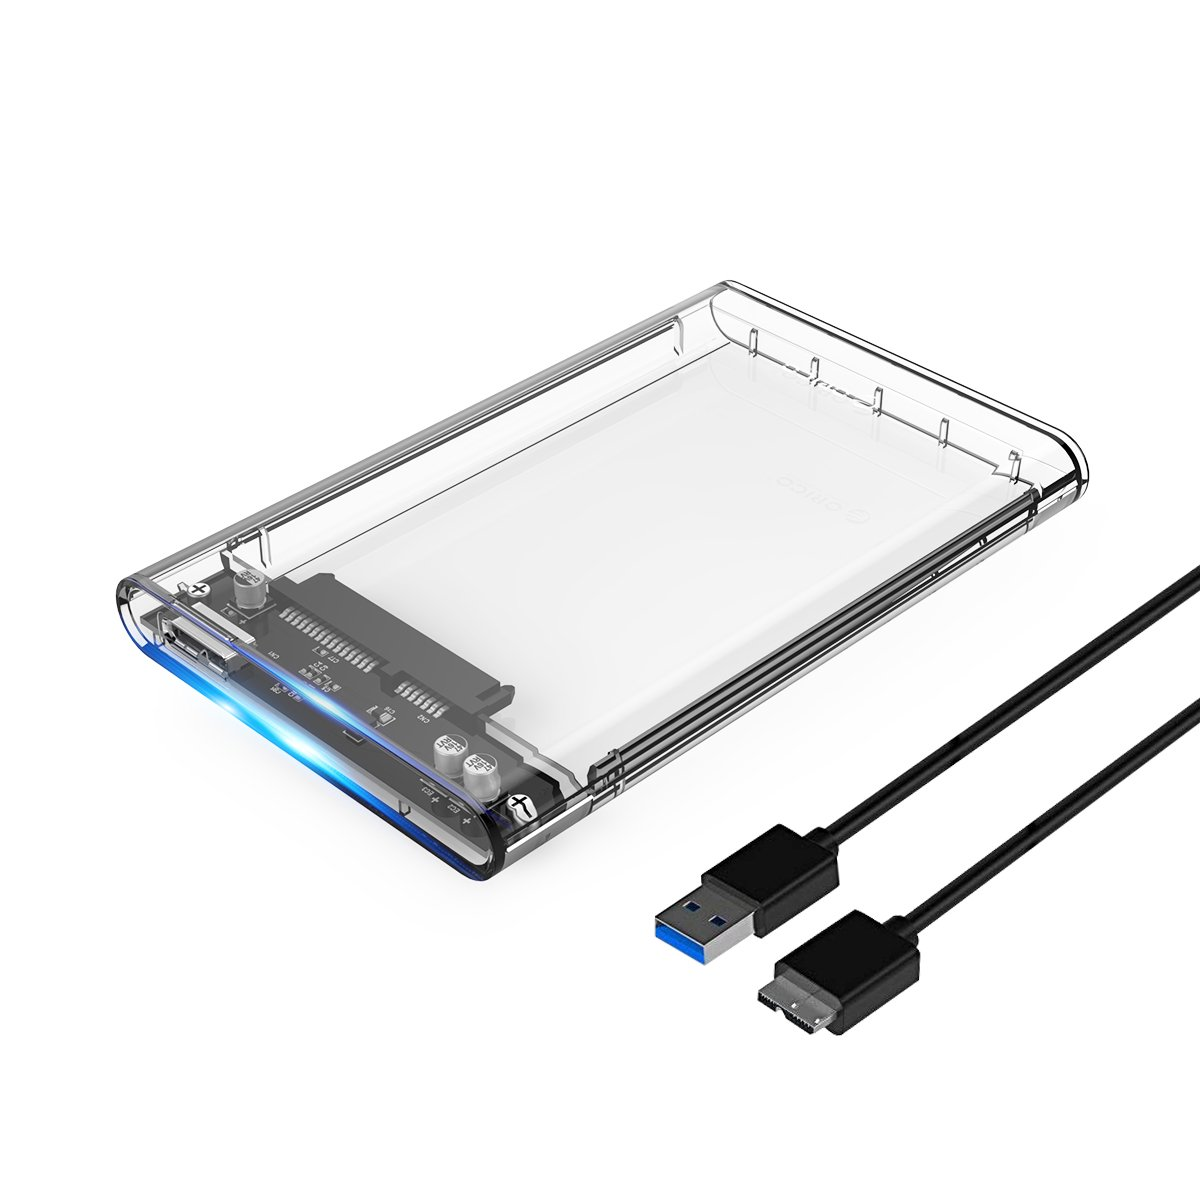 ORICO 2.5 USB 3 External Hard Drive Enclosure Casing for 2.5 inch 7mm/9.5mm SATA HDD SSD Support UASP SATA III Max 2T Tool-Free Design - Clear